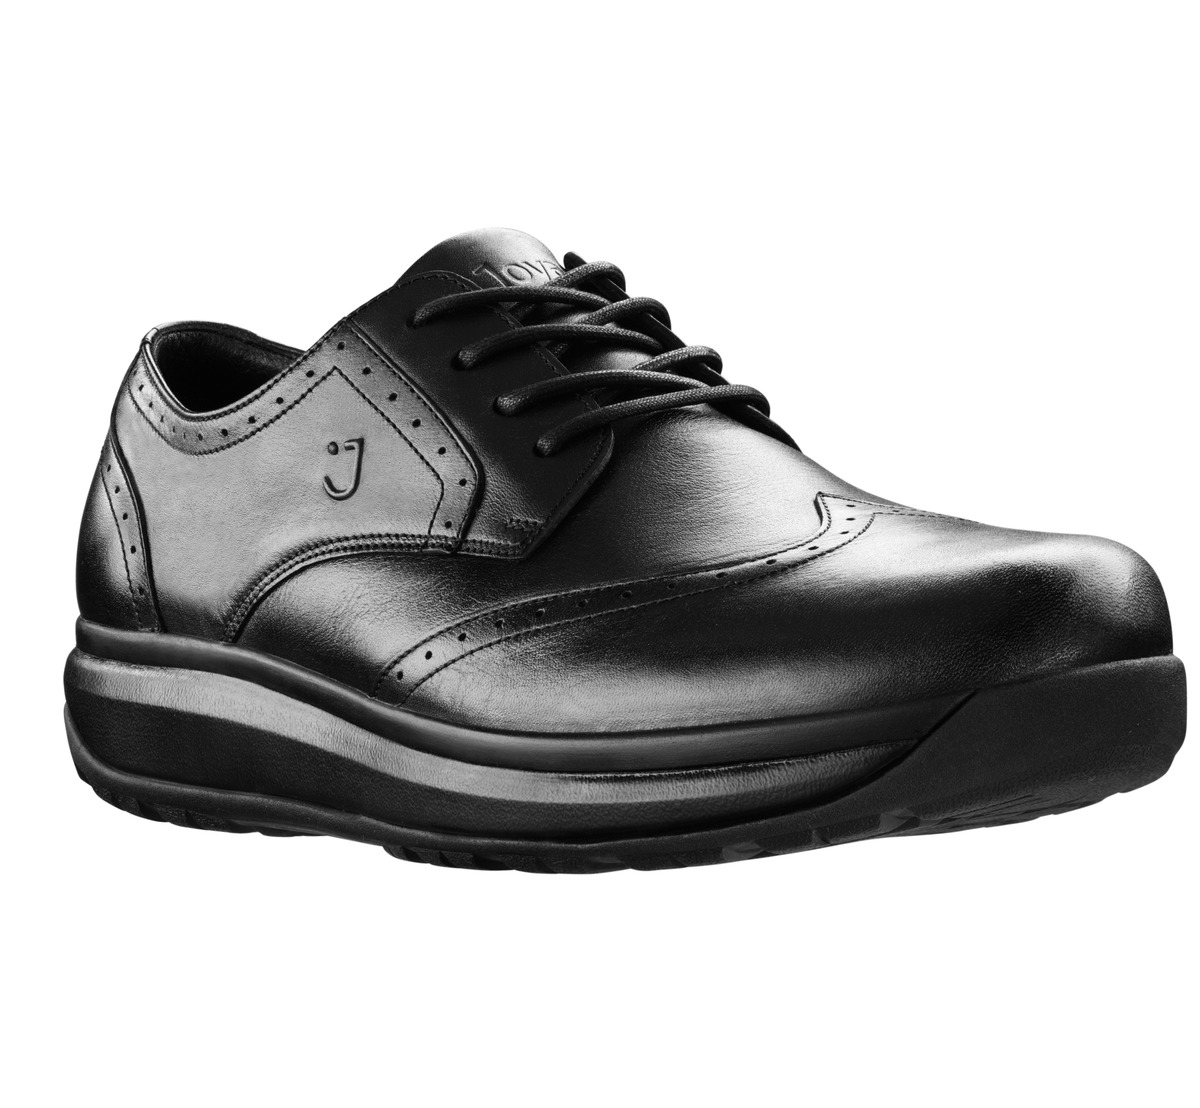 Clarks Shoes Company Ownership